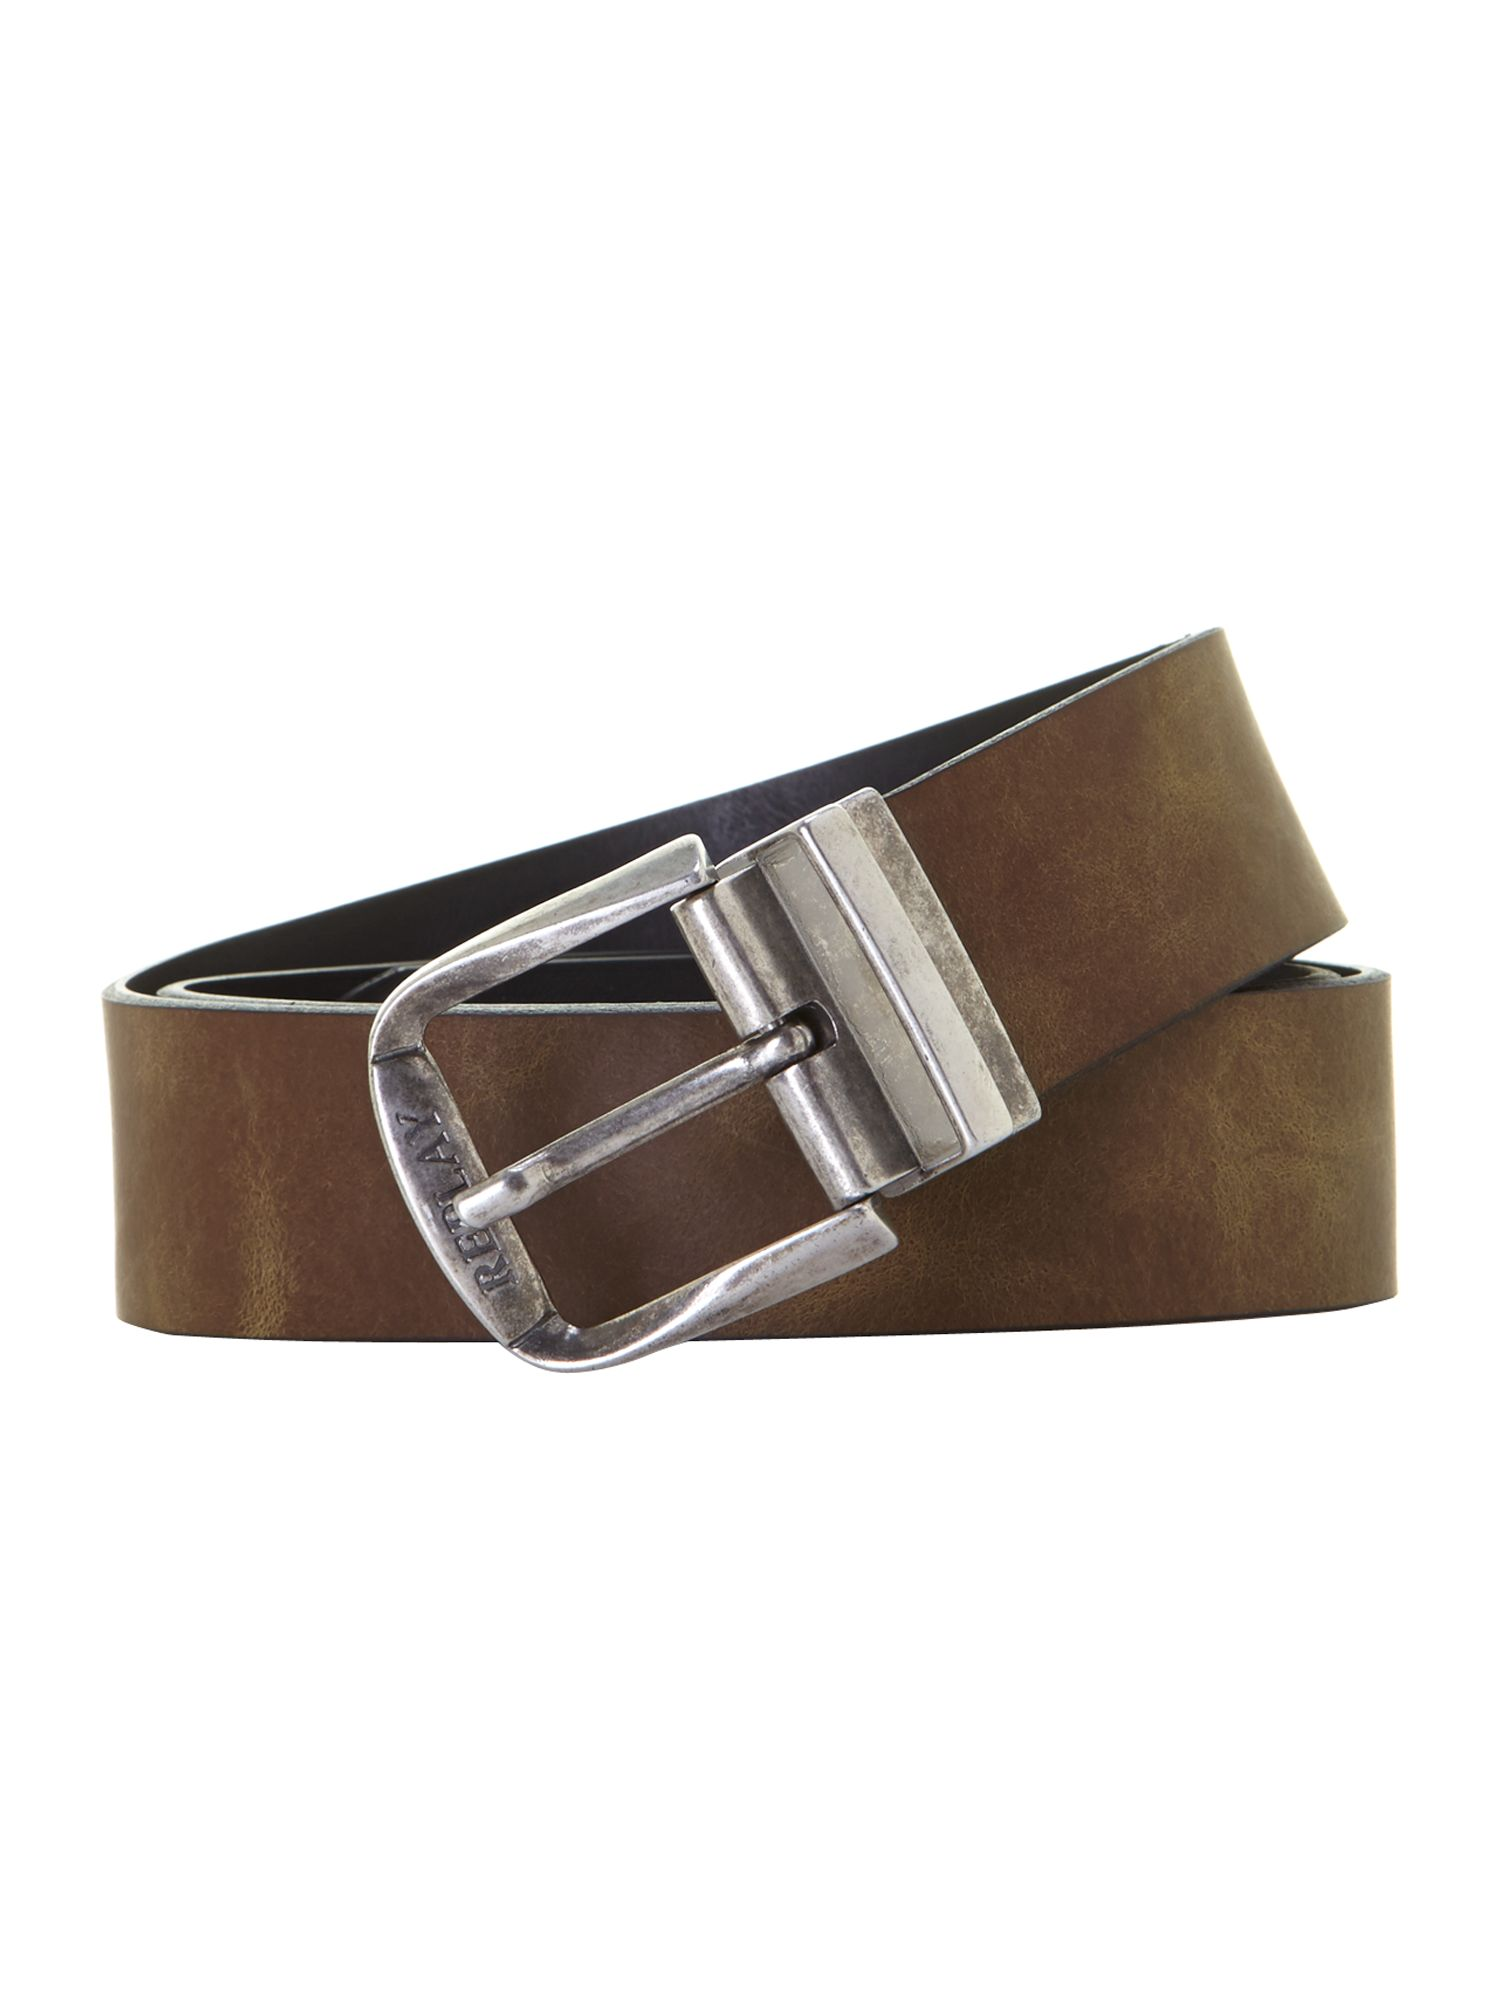 Crust leather belt